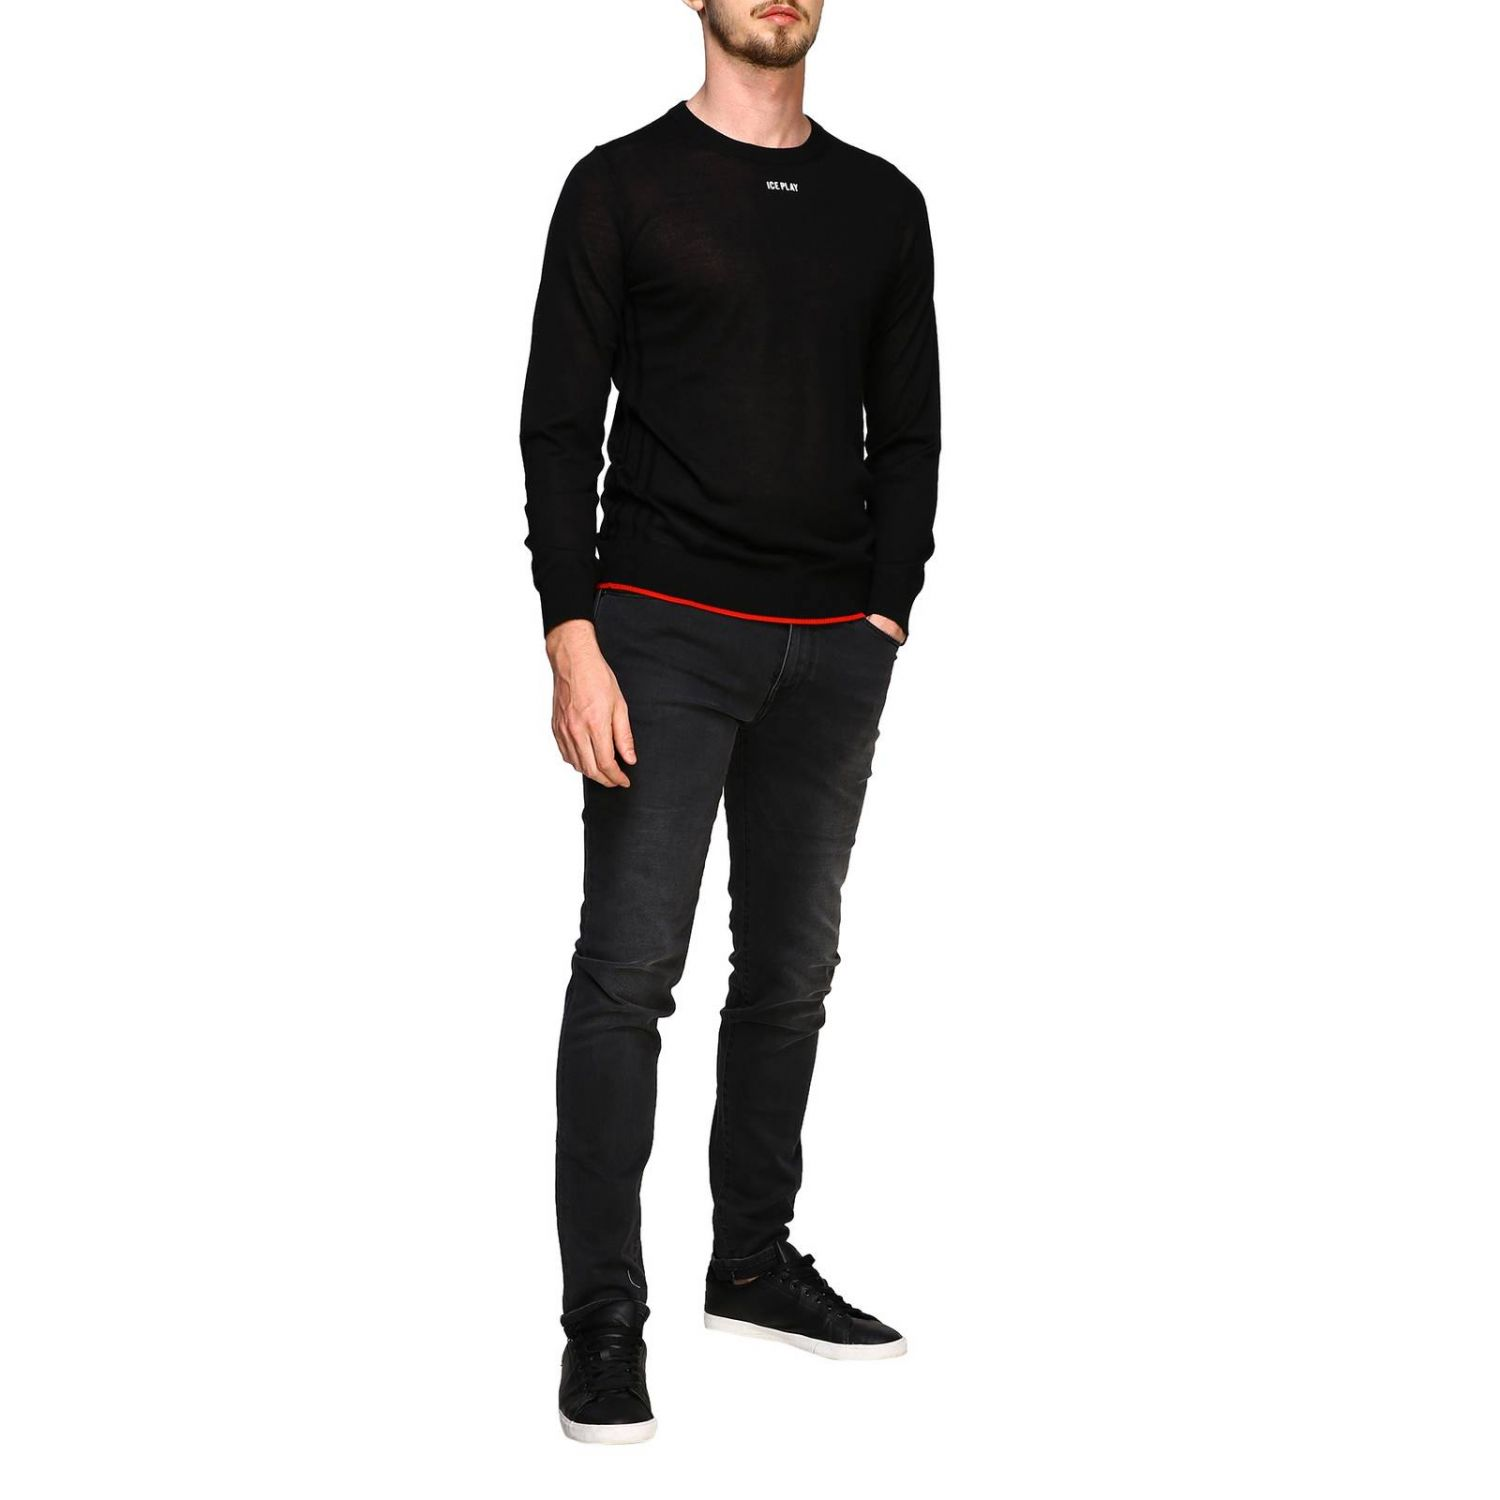 Sweater men Ice Play black 2